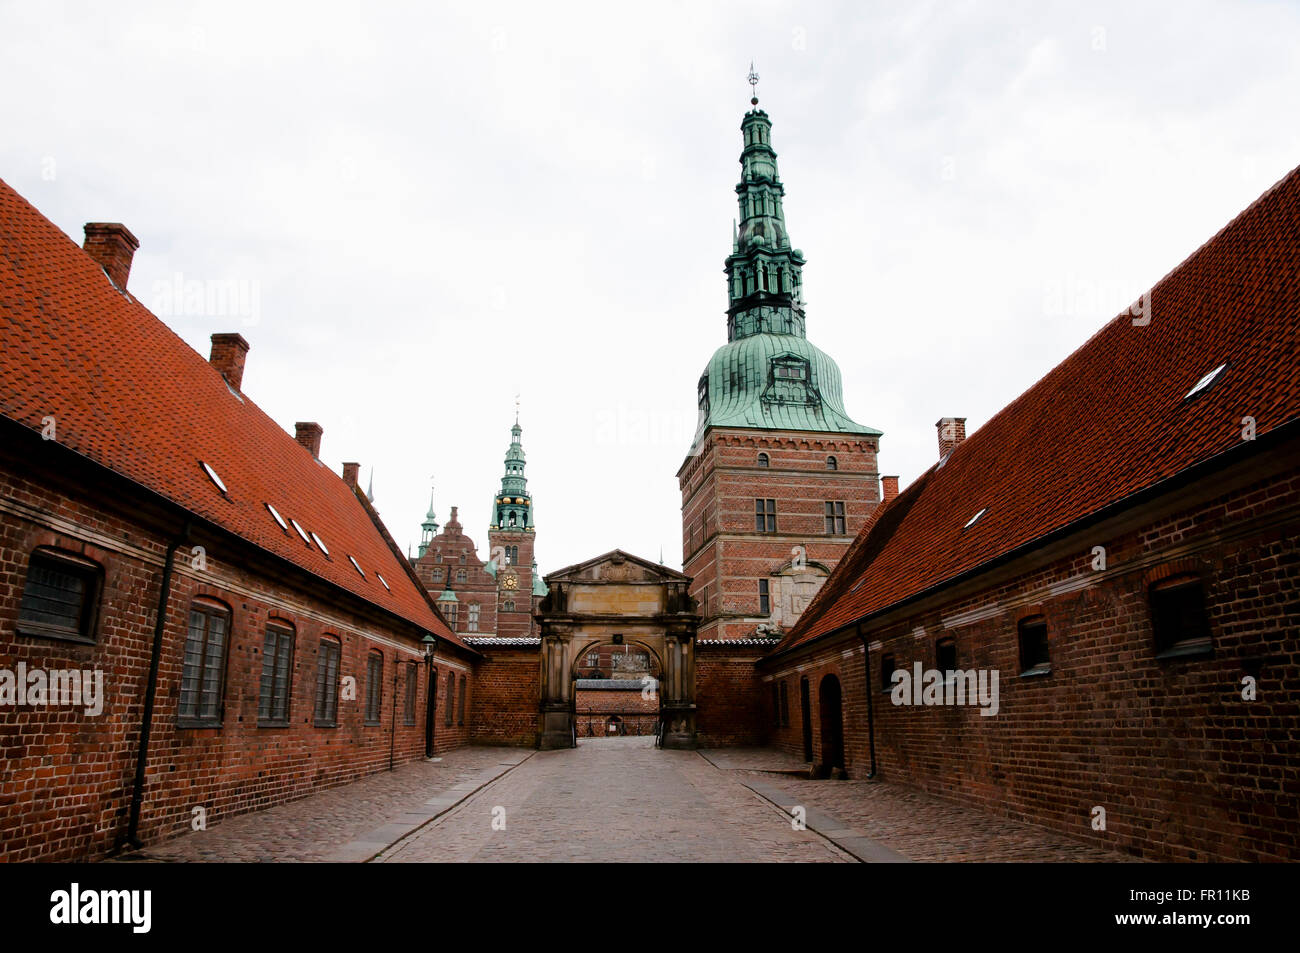 Entrance to Frederiksborg Castle - Hillerod - Denmark - Stock Image